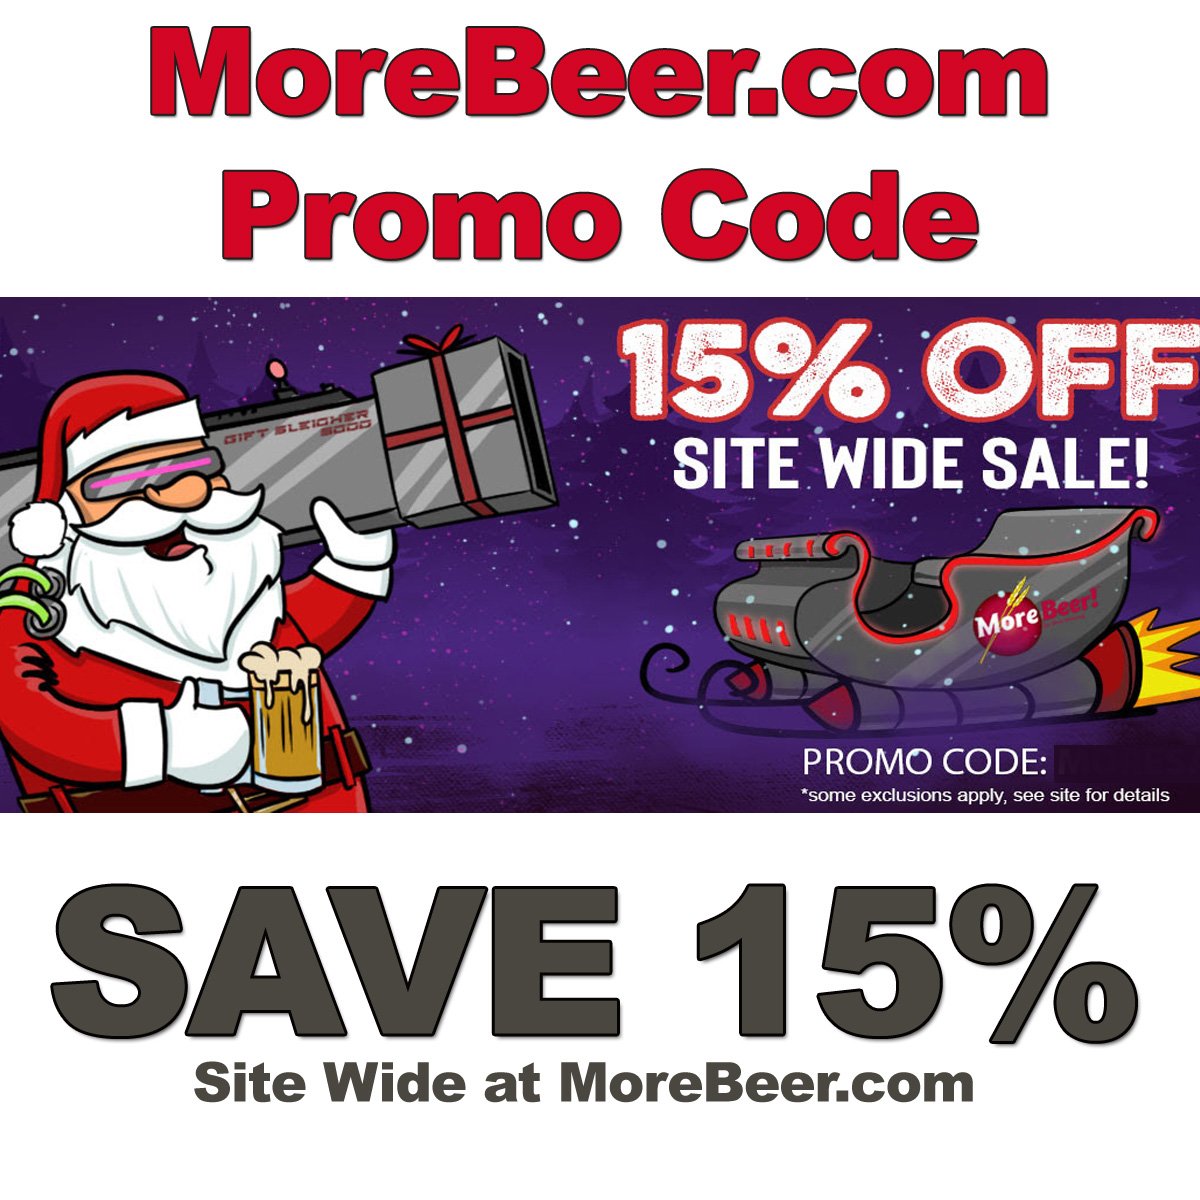 Home Wine Making Coupon Codes for Save 15% Site Wide at MoreBeer.com with this More Beer Promo Code for December Coupon Code